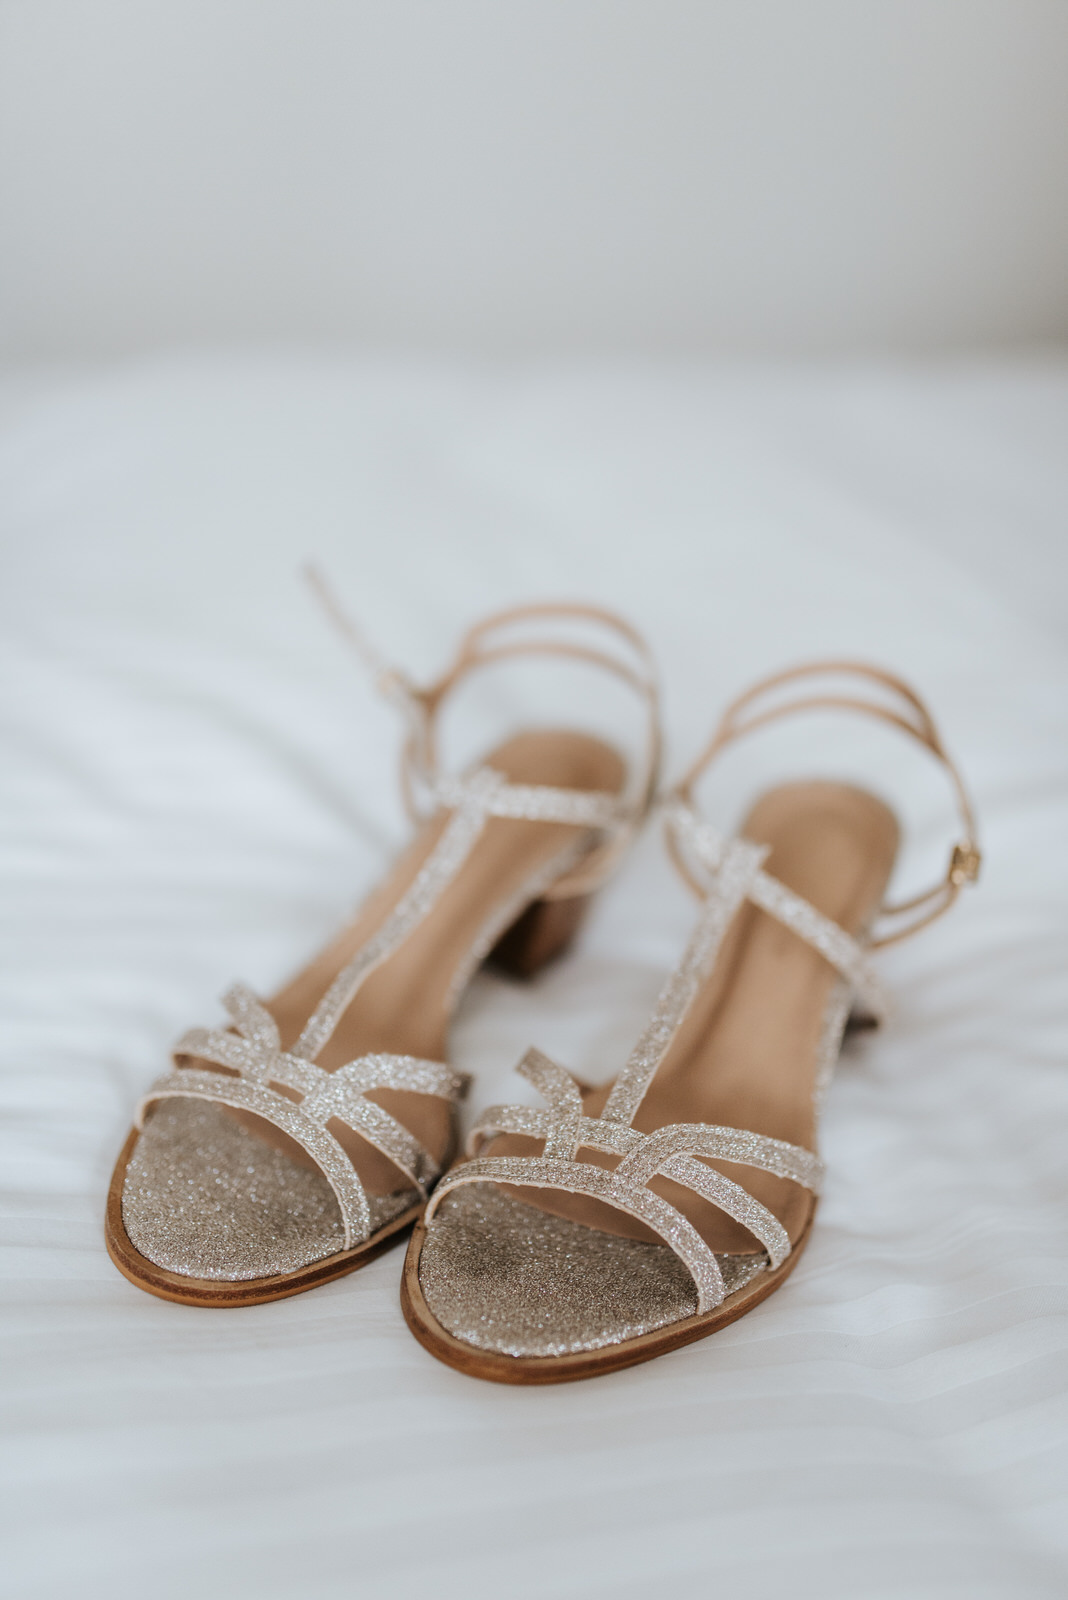 Detail shot of the bride's wedding shoes